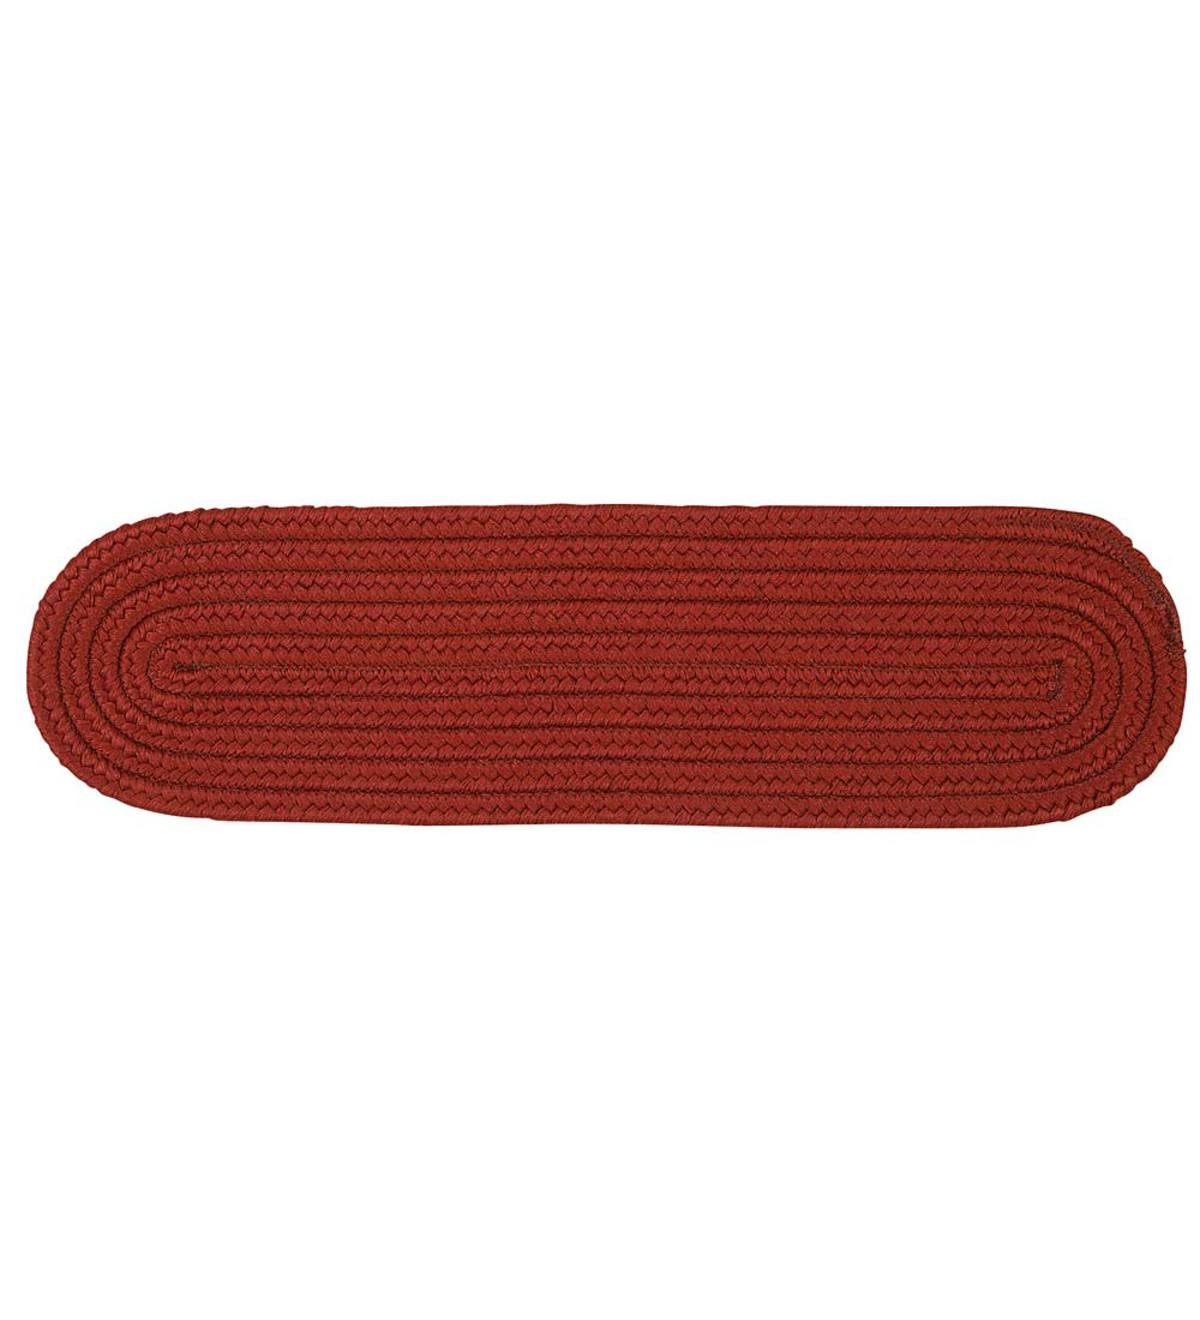 Oval Stair Tread - BRICK